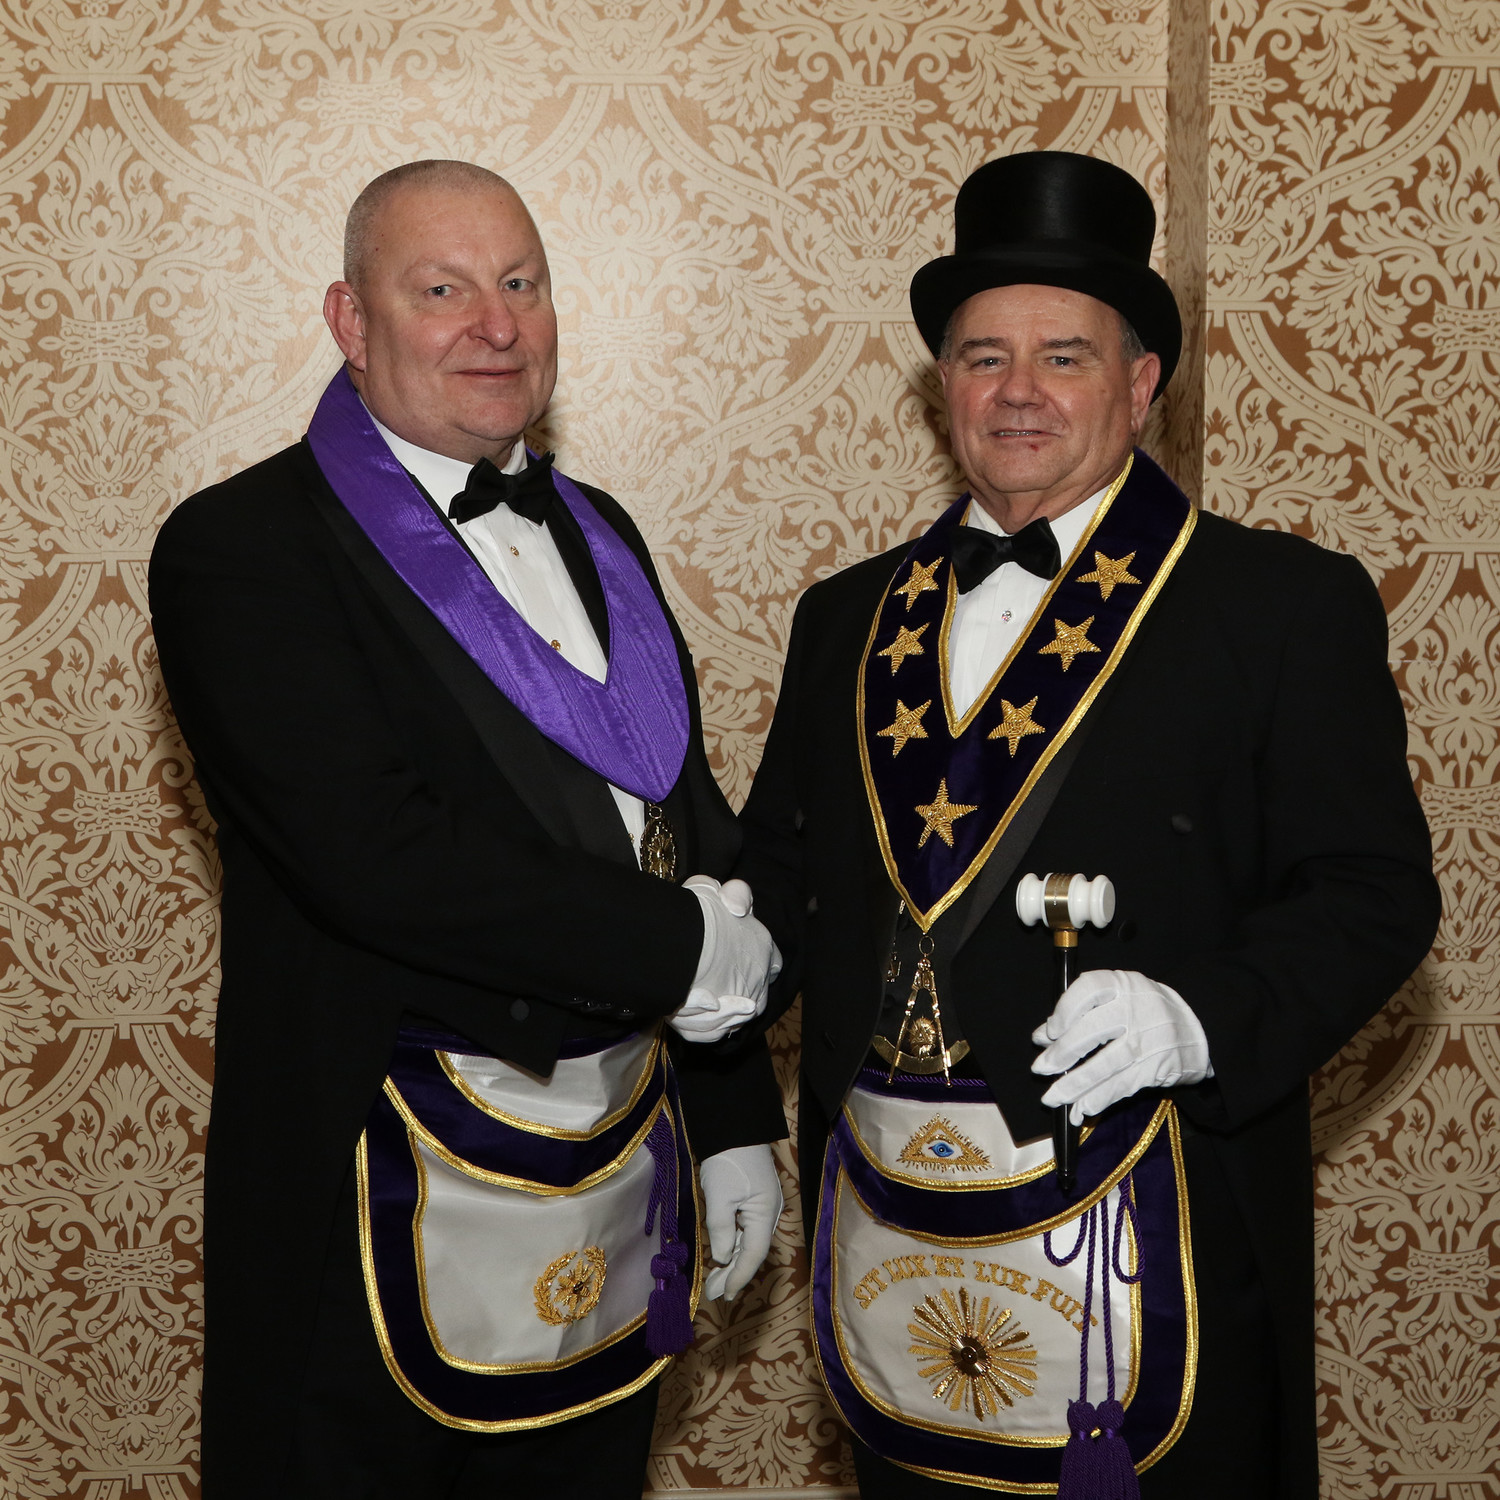 Right Worshipful Grand Master of the Grand Lodge of Pennsylvania S. Eugene Herritt, left, recently appointed Henry J. Federowicz as new district deputy grand master for Masonic District 2.